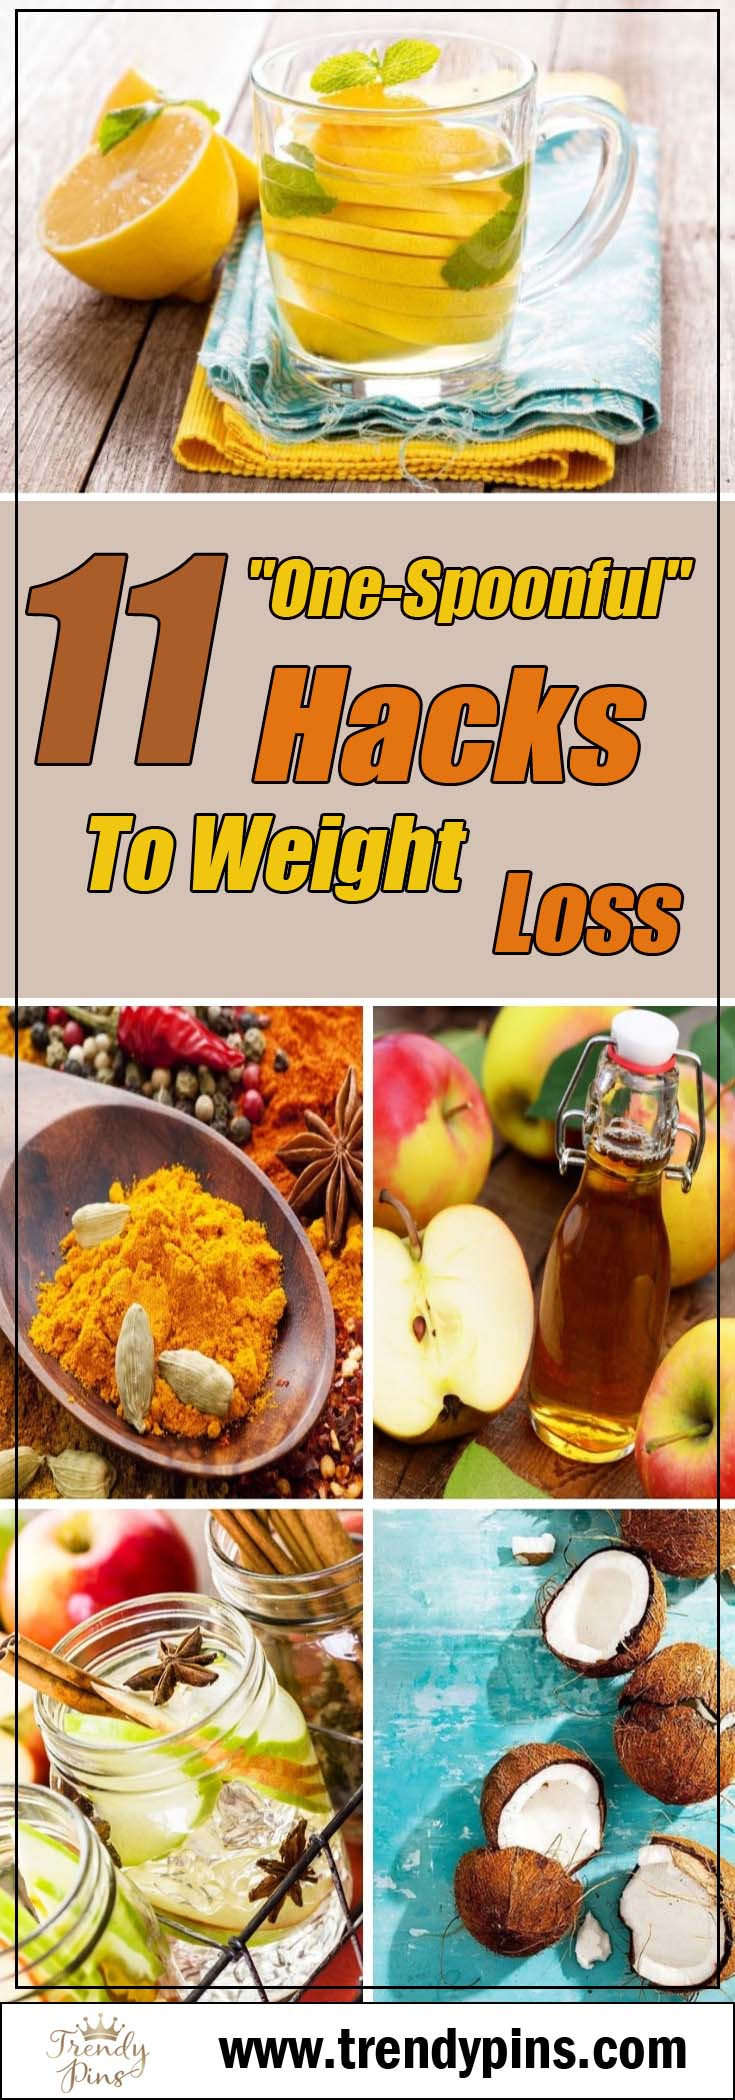 11 one spoonful hacks to weight loss